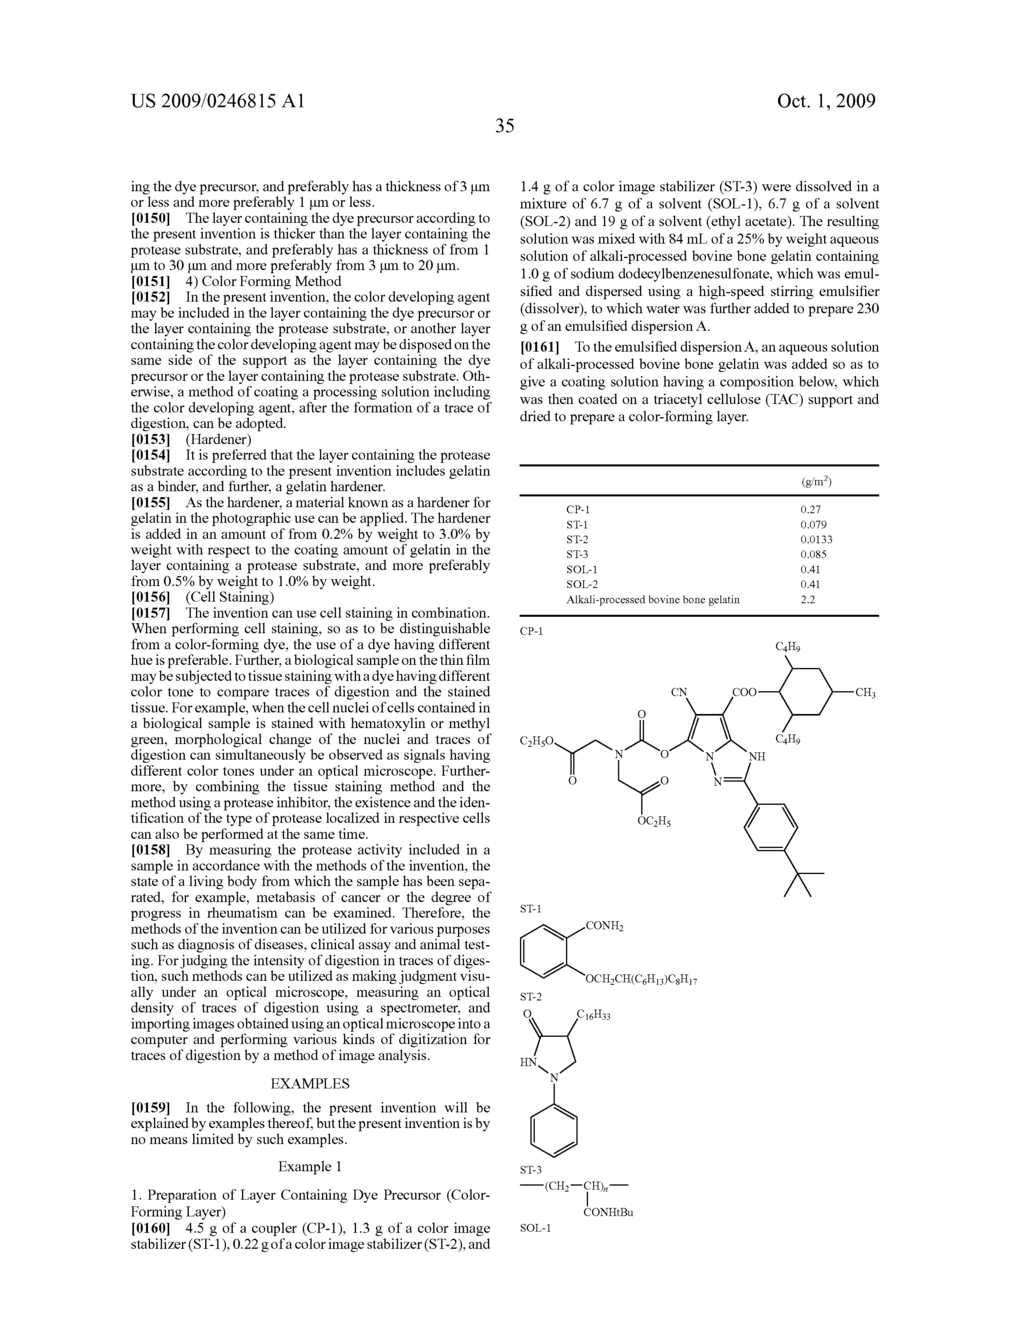 PROTEASE DETECTION MATERIAL, SET OF PROTEASE DETECTION MATERIALS, AND METHOD FOR MEASURING PROTEASE - diagram, schematic, and image 36